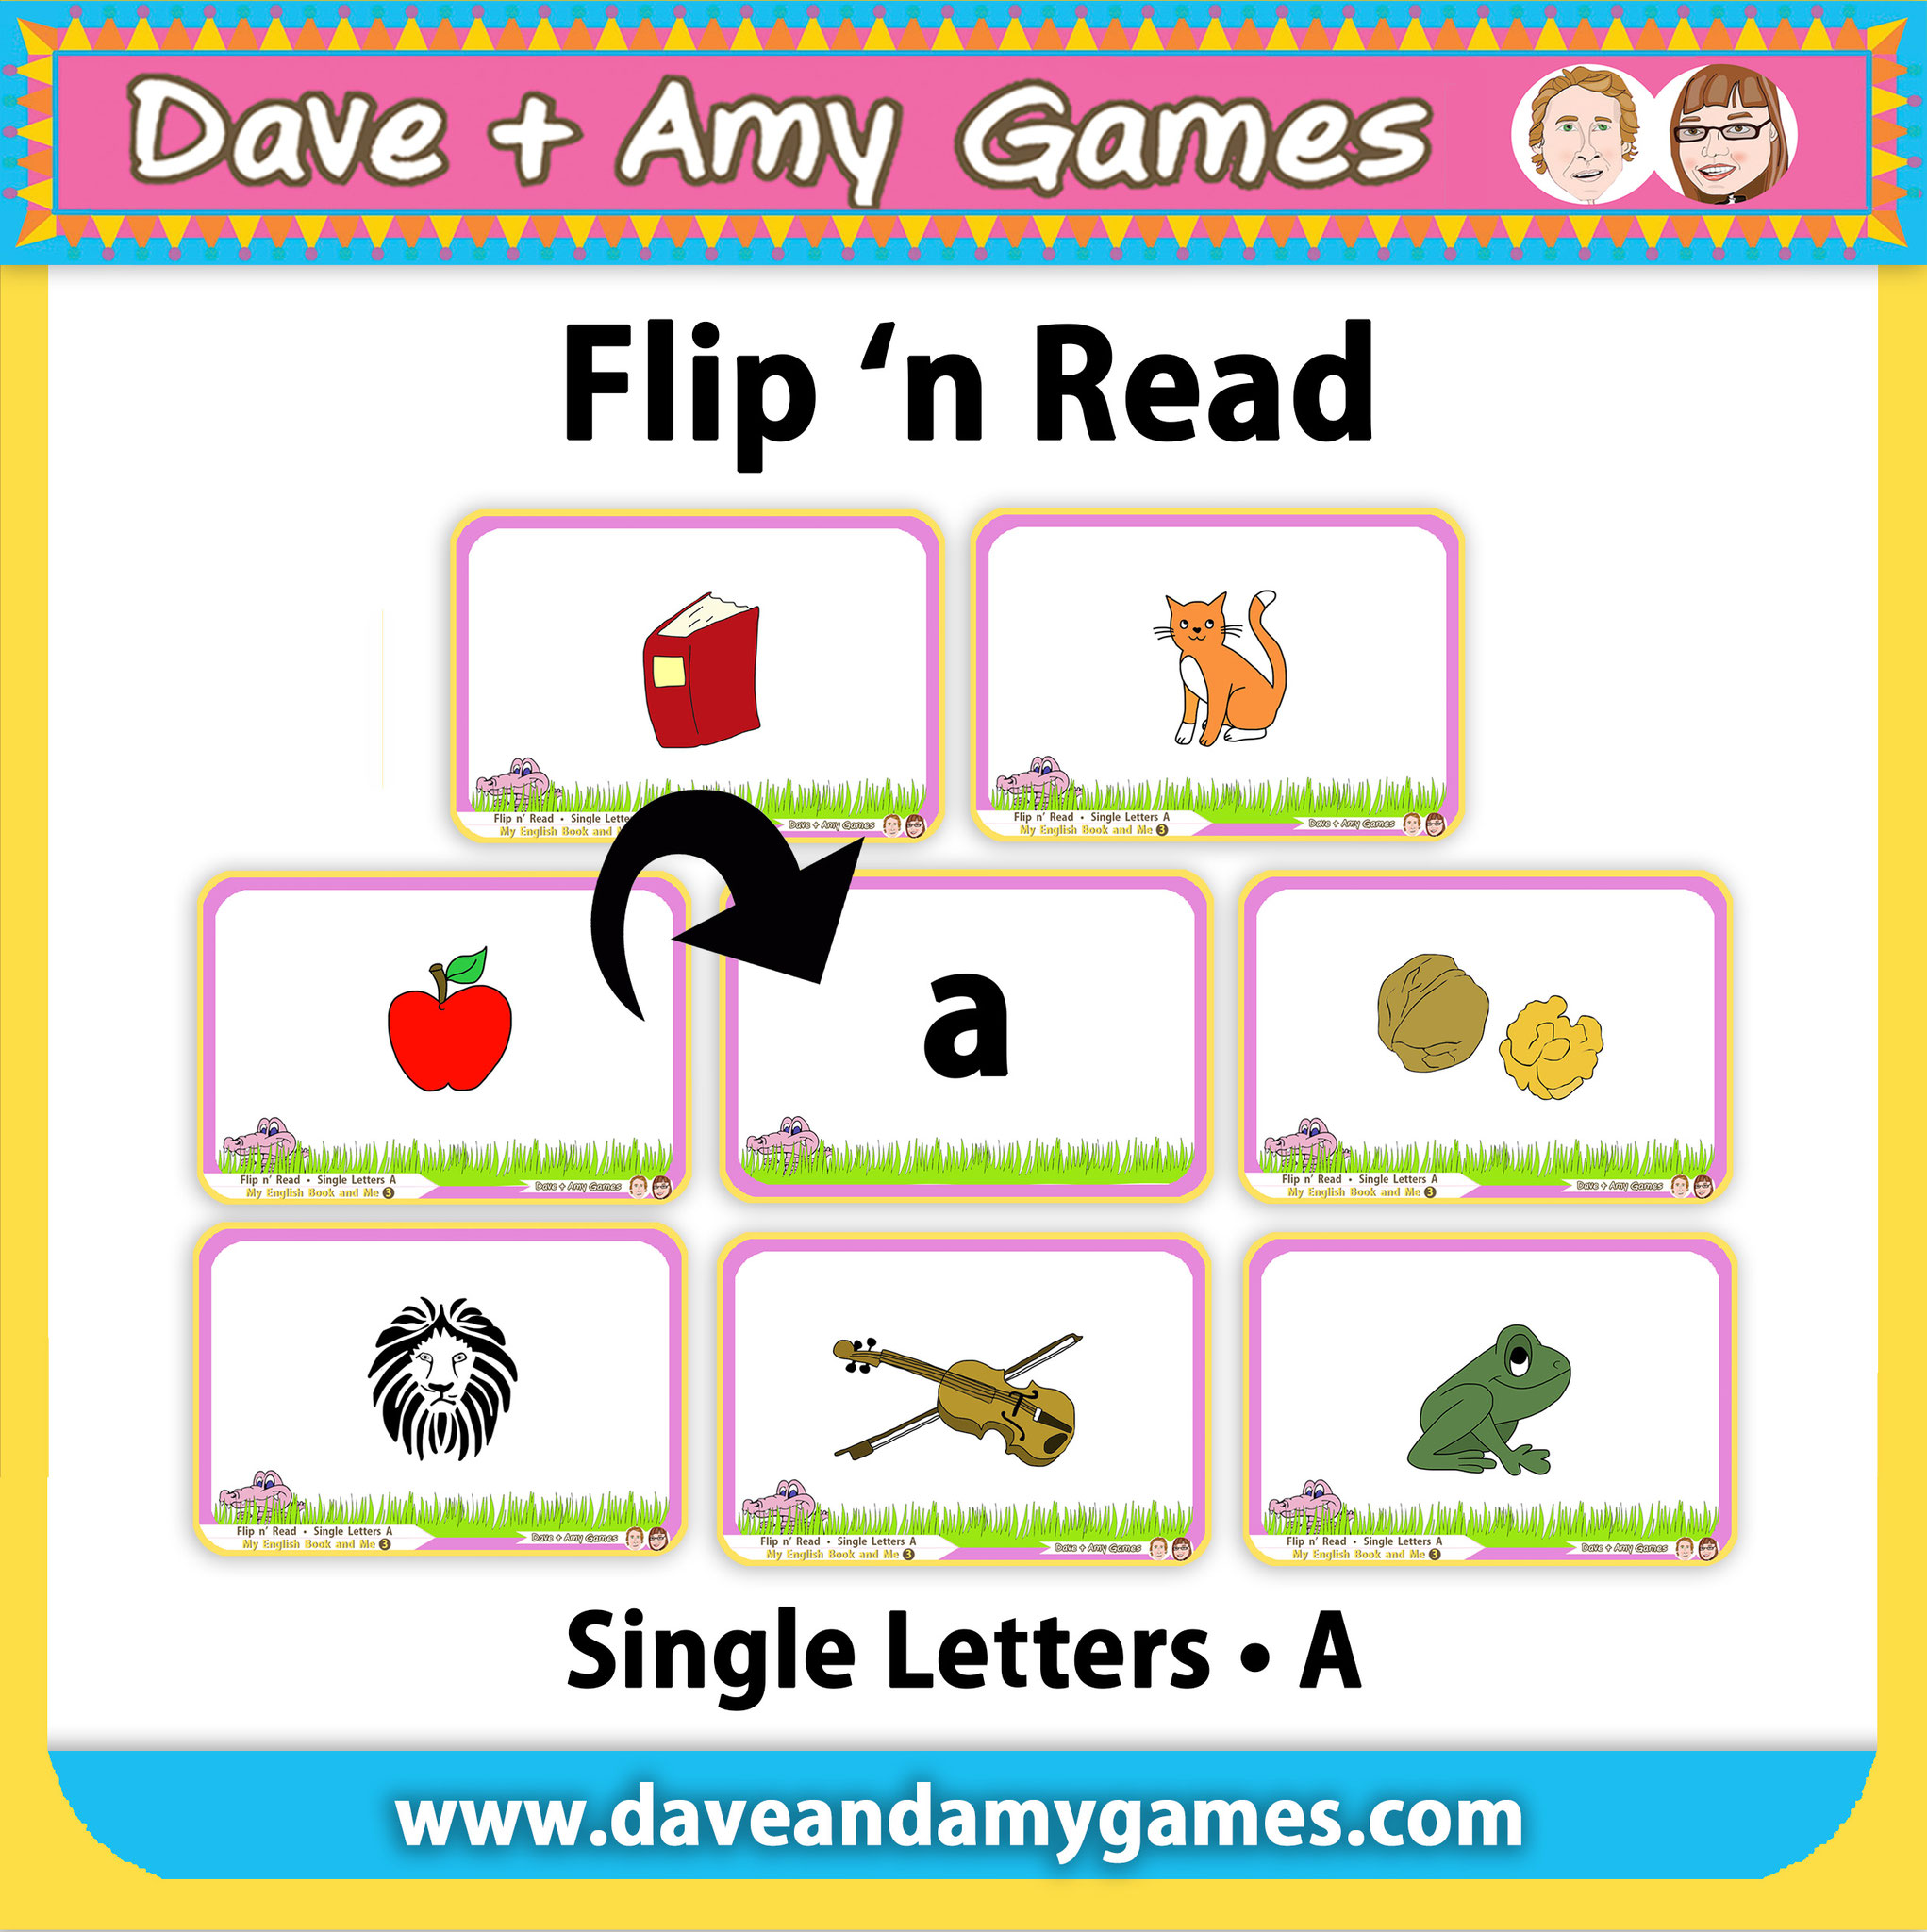 Flip 'n Read (3 ABC Phonics levels = 24 games total)